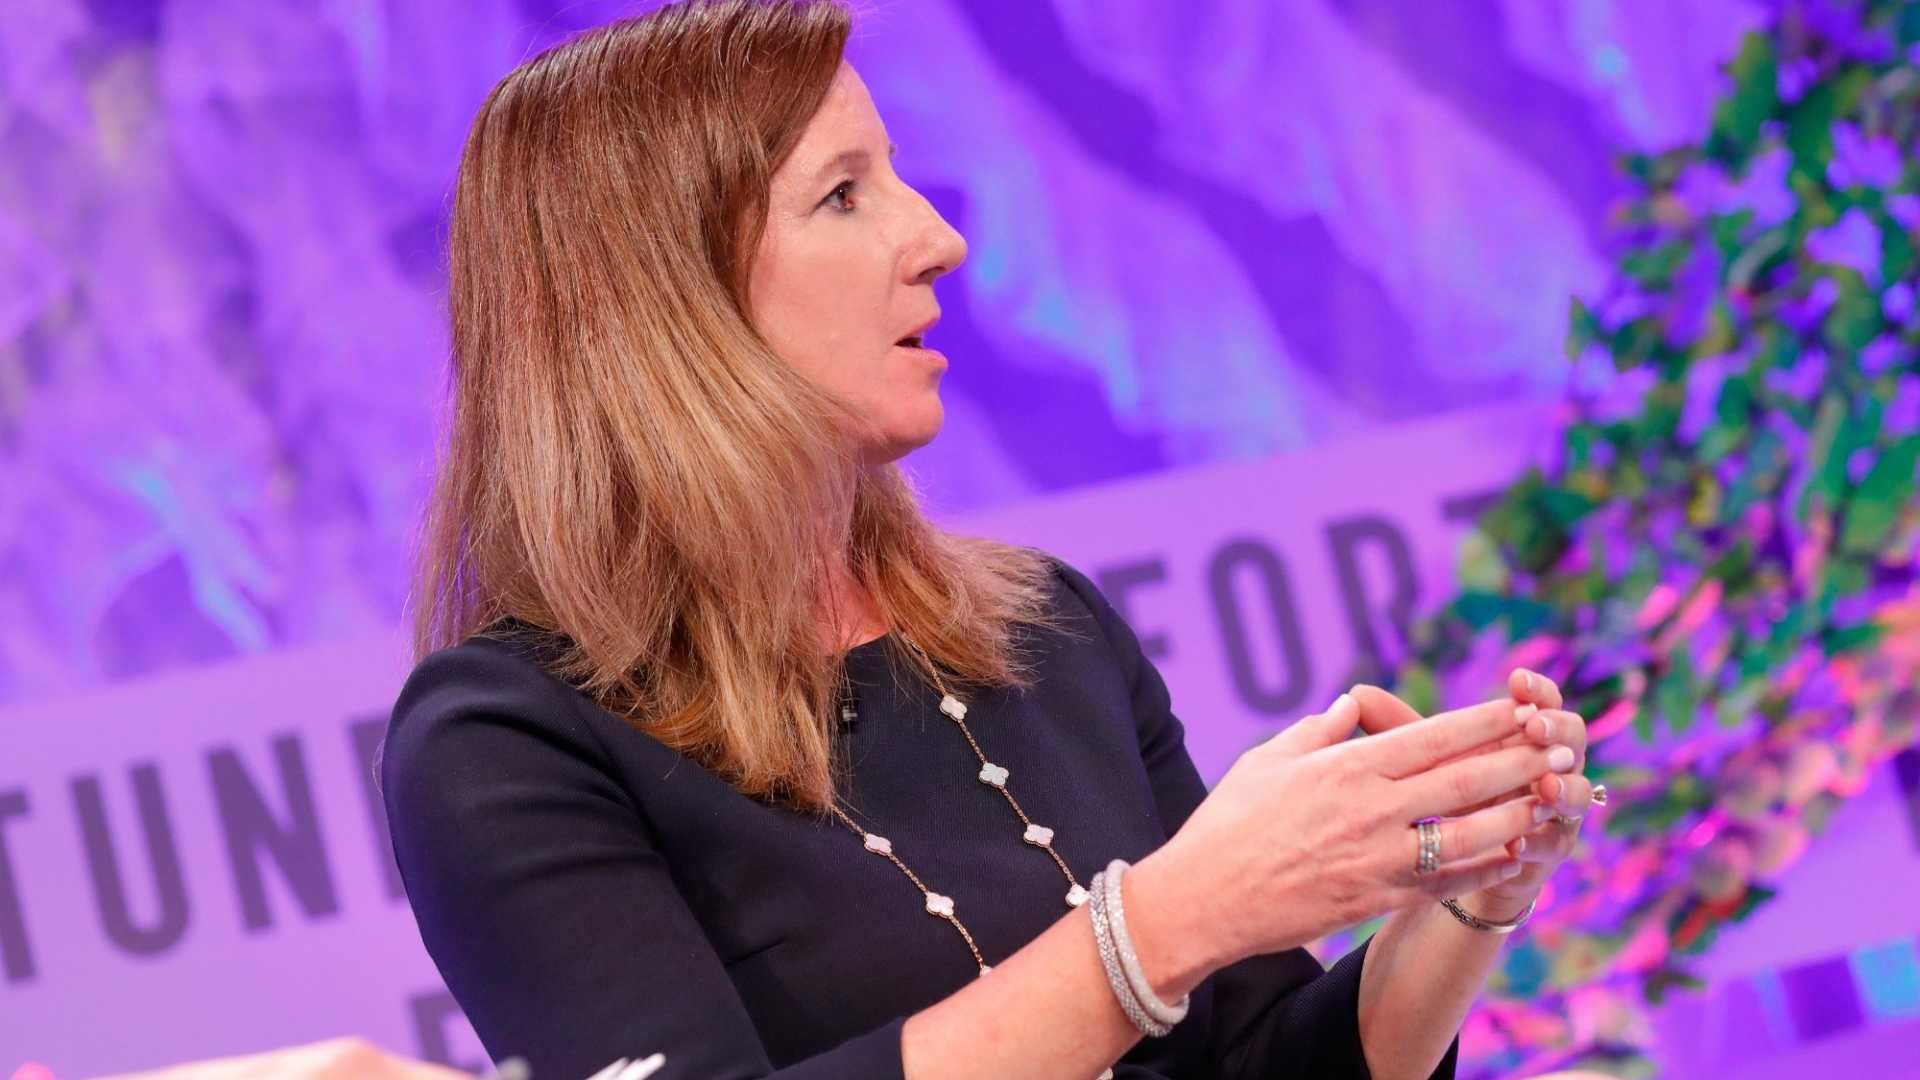 A Top-Rated CEO on Glassdoor Says This Is Her Secret to Success